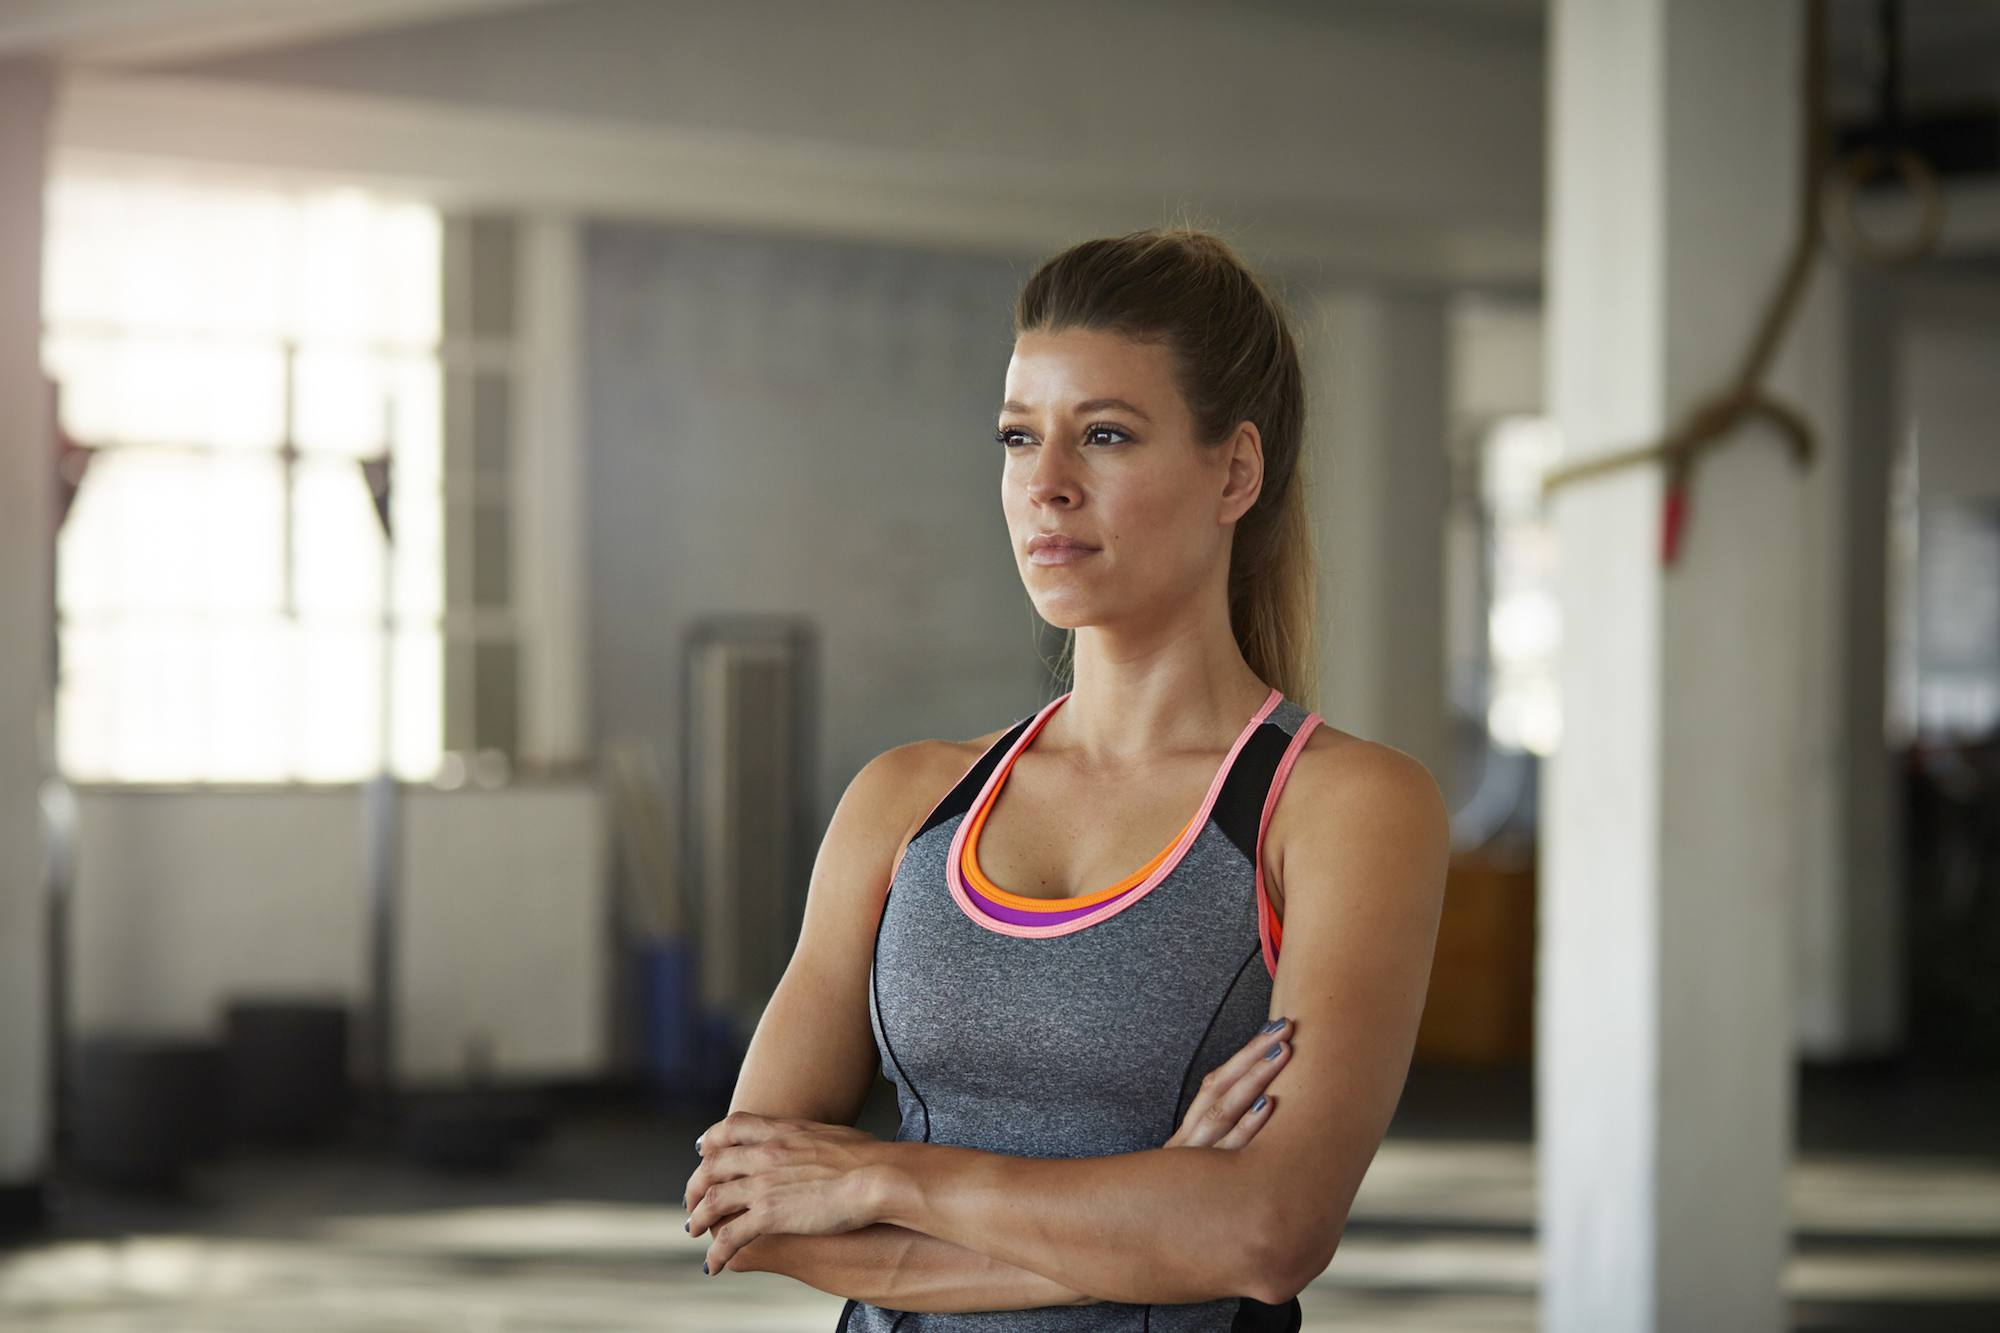 Woman looking straight ahead at gym